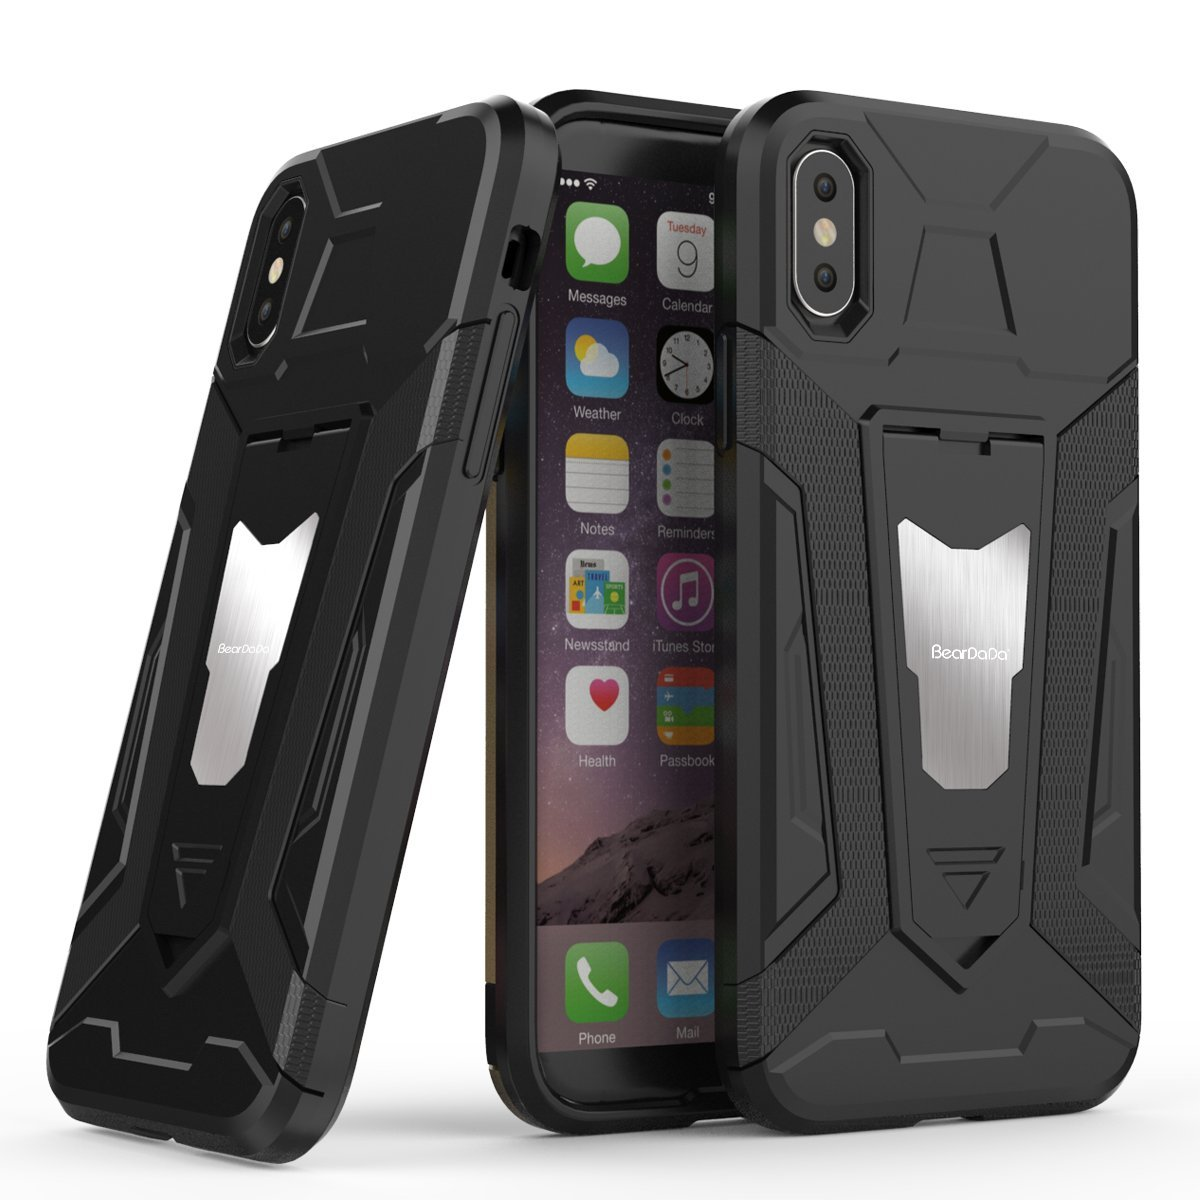 iPhone 7 Case, Queen Forever 360 Full Body Protection Hard Slim Case Coated Non Slip Matte Surface with Tempered Glass Screen Protector for Apple iPhone 7 8 Plus